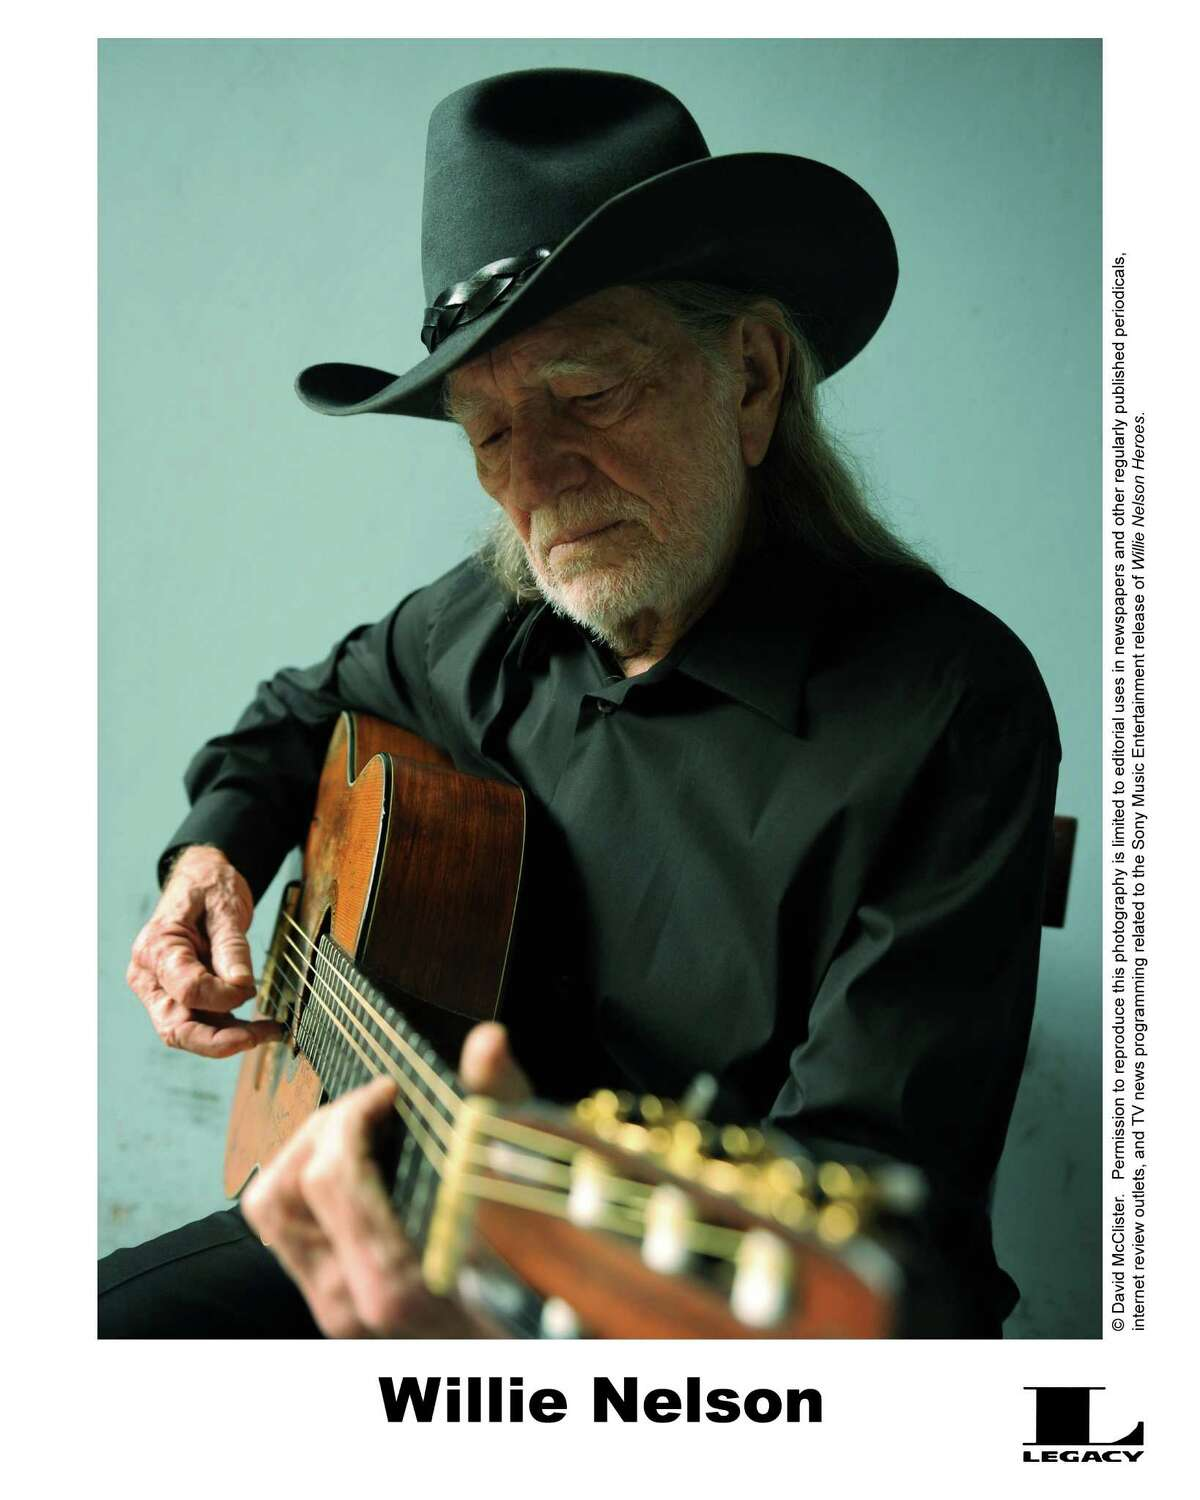 """""""The central quality about Willie that is so appealing is his honesty,"""" says fellow Texas singer-songwriter Lyle Lovett. """"He just tells the truth all the time - in his life and in his songs. ... That's the thing about Willie: His songs are without agenda."""""""